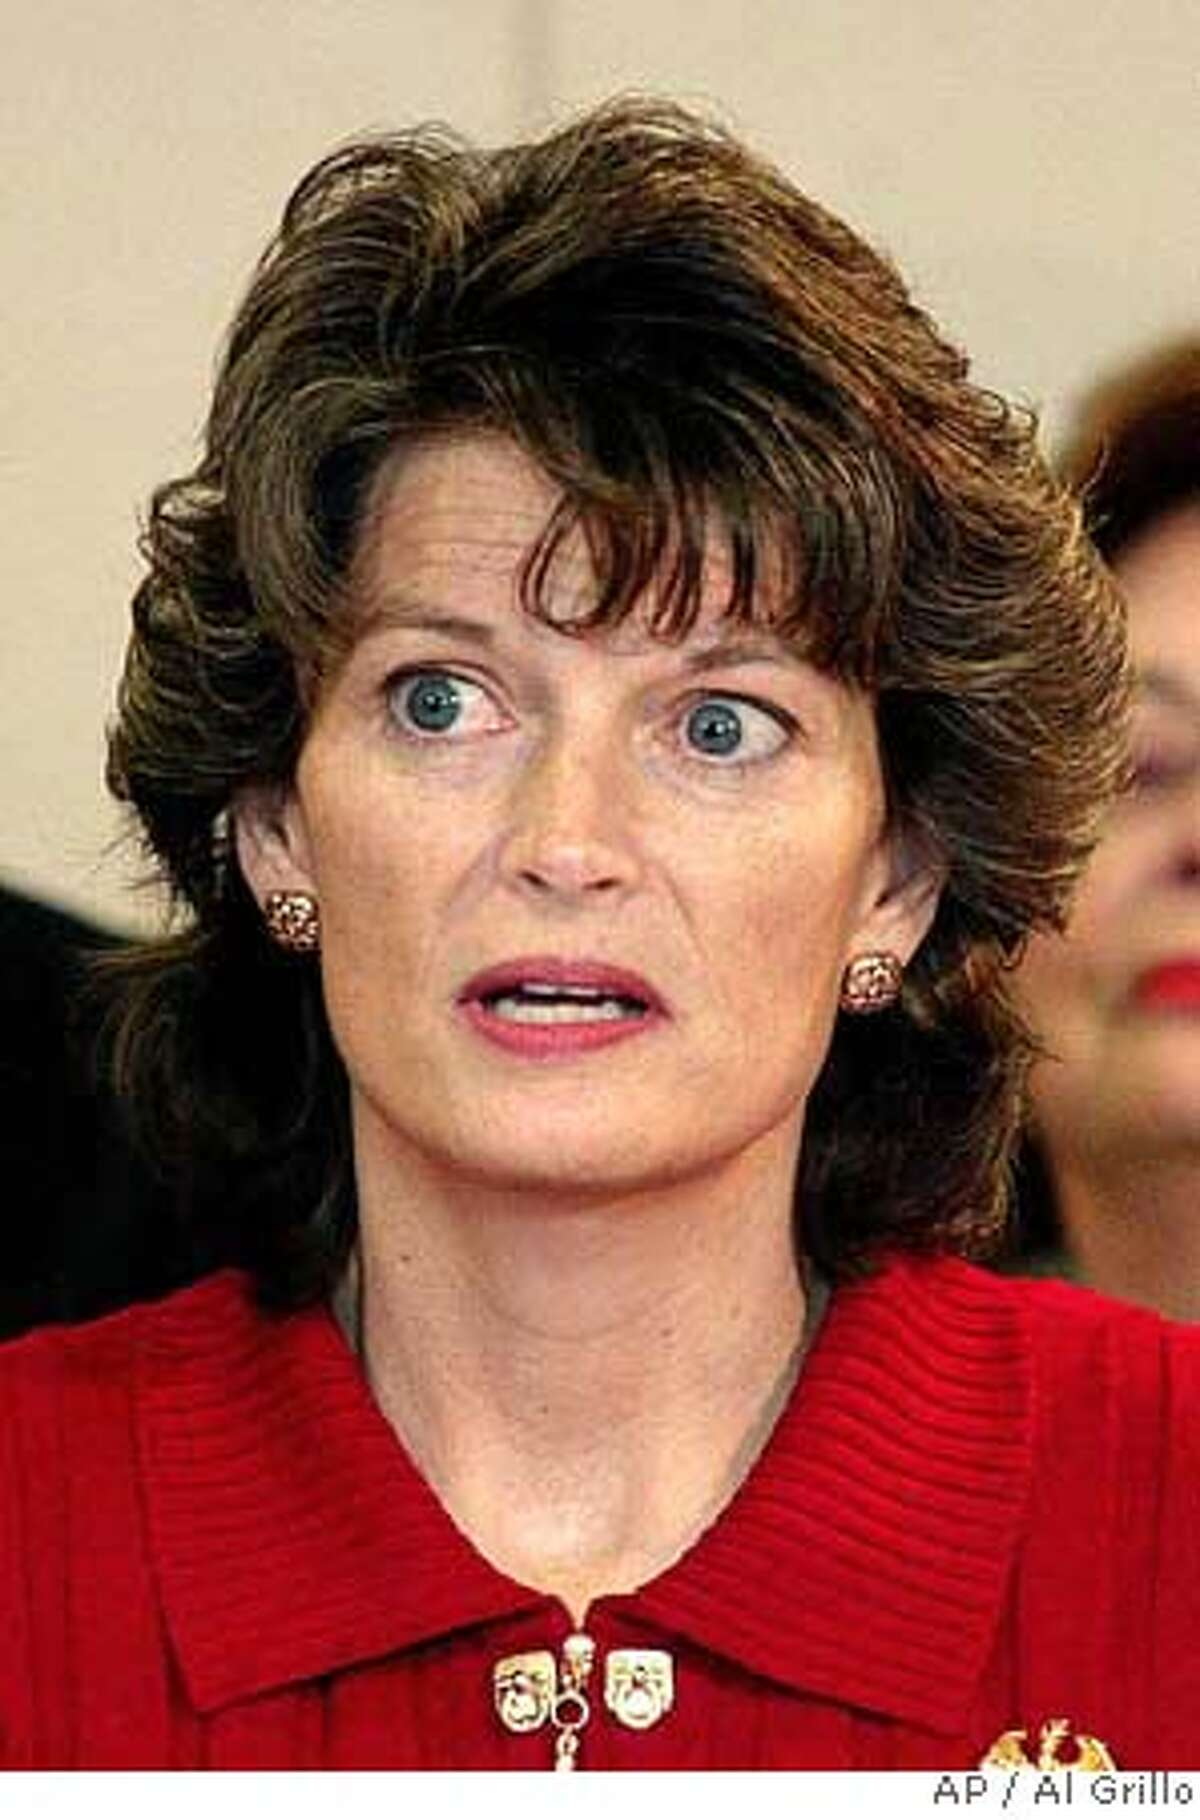 Alaska state Rep. Lisa Murkowski, R-Anchorage, is sworn in as Alaska's new U.S. senator, Friday, Dec. 20, 2002, in Anchorage, Alaska. Murkowski was appointed by her father, Gov. Frank Murkowski, to serve the remaining two years of his Senate term after he gave up his seat to become governor. The 45-year-old lawyer and mother of two was re-elected last month to a third term in the Alaska Legislature and had been selected as House Majority leader. The governor said his decision was based solely on his daughter's qualifications. (AP Photo/Al Grillo) Ran on: 10-04-2004 Sen. Tom Daschle, top, is getting closer to Bush; Erskine Bowles, above, is distancing himself from Clinton. Ran on: 10-04-2004 Sen. Tom Daschle, top, is getting closer to Bush; Erskine Bowles, above, is distancing himself from Clinton. #######421829666